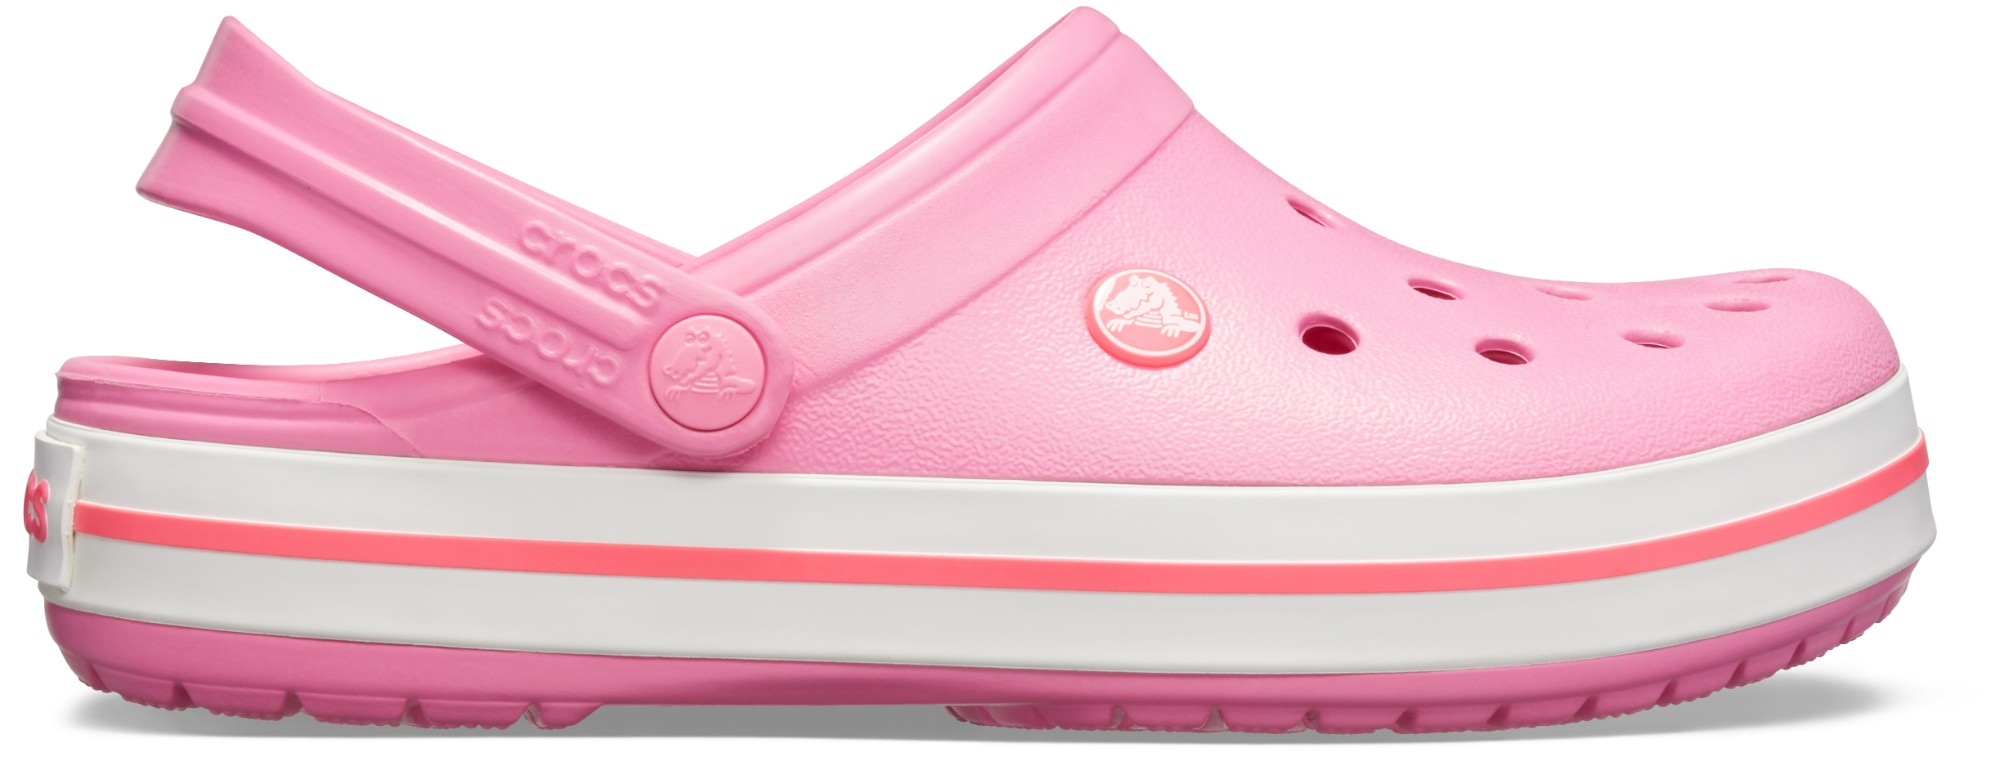 Crocs™ Crocband™ Pink Lemonade/White 36,5